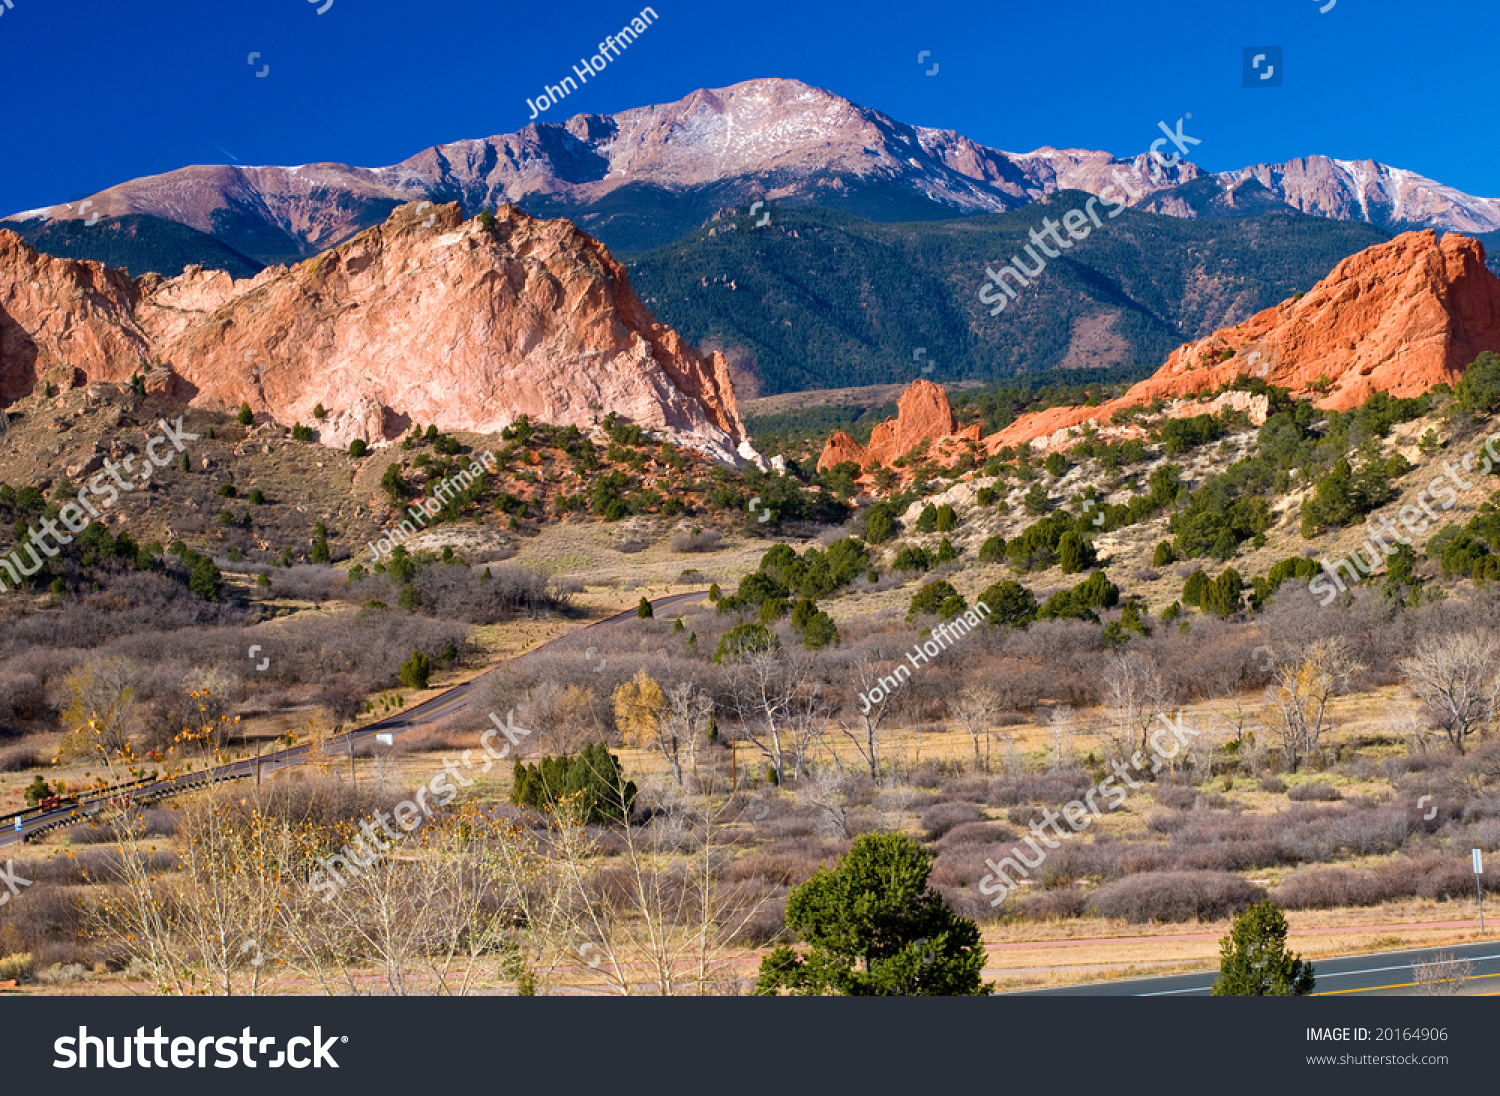 Colorful Garden Of The Gods Park Near Colorado Springs Colorado With Snow Dusted Pikes Peak